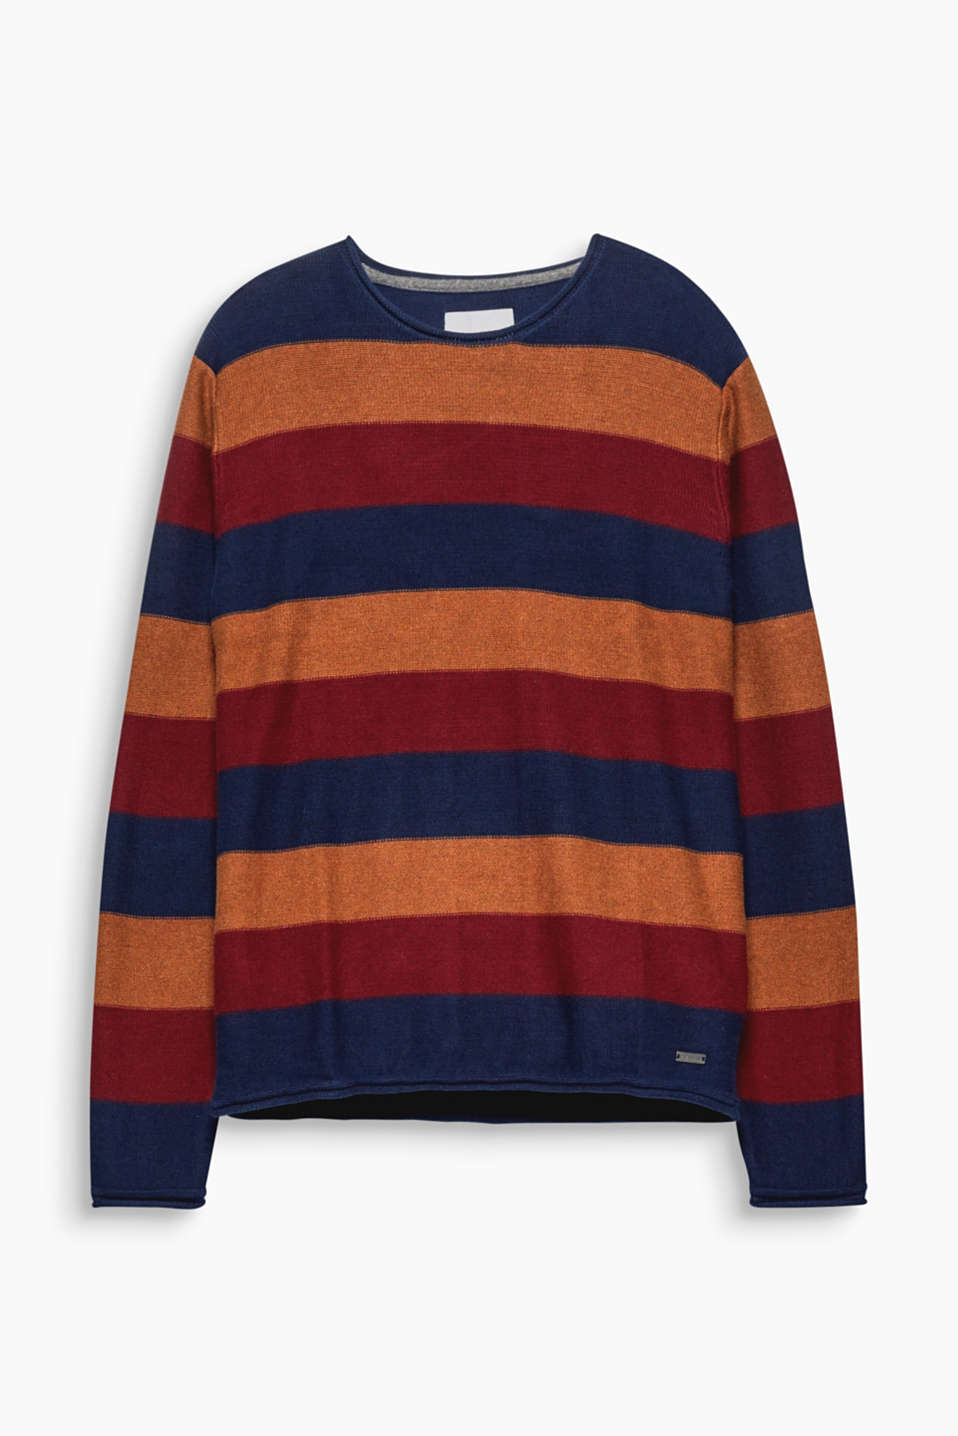 The striking blue striped look makes this knitted jumper a cool head-turner.